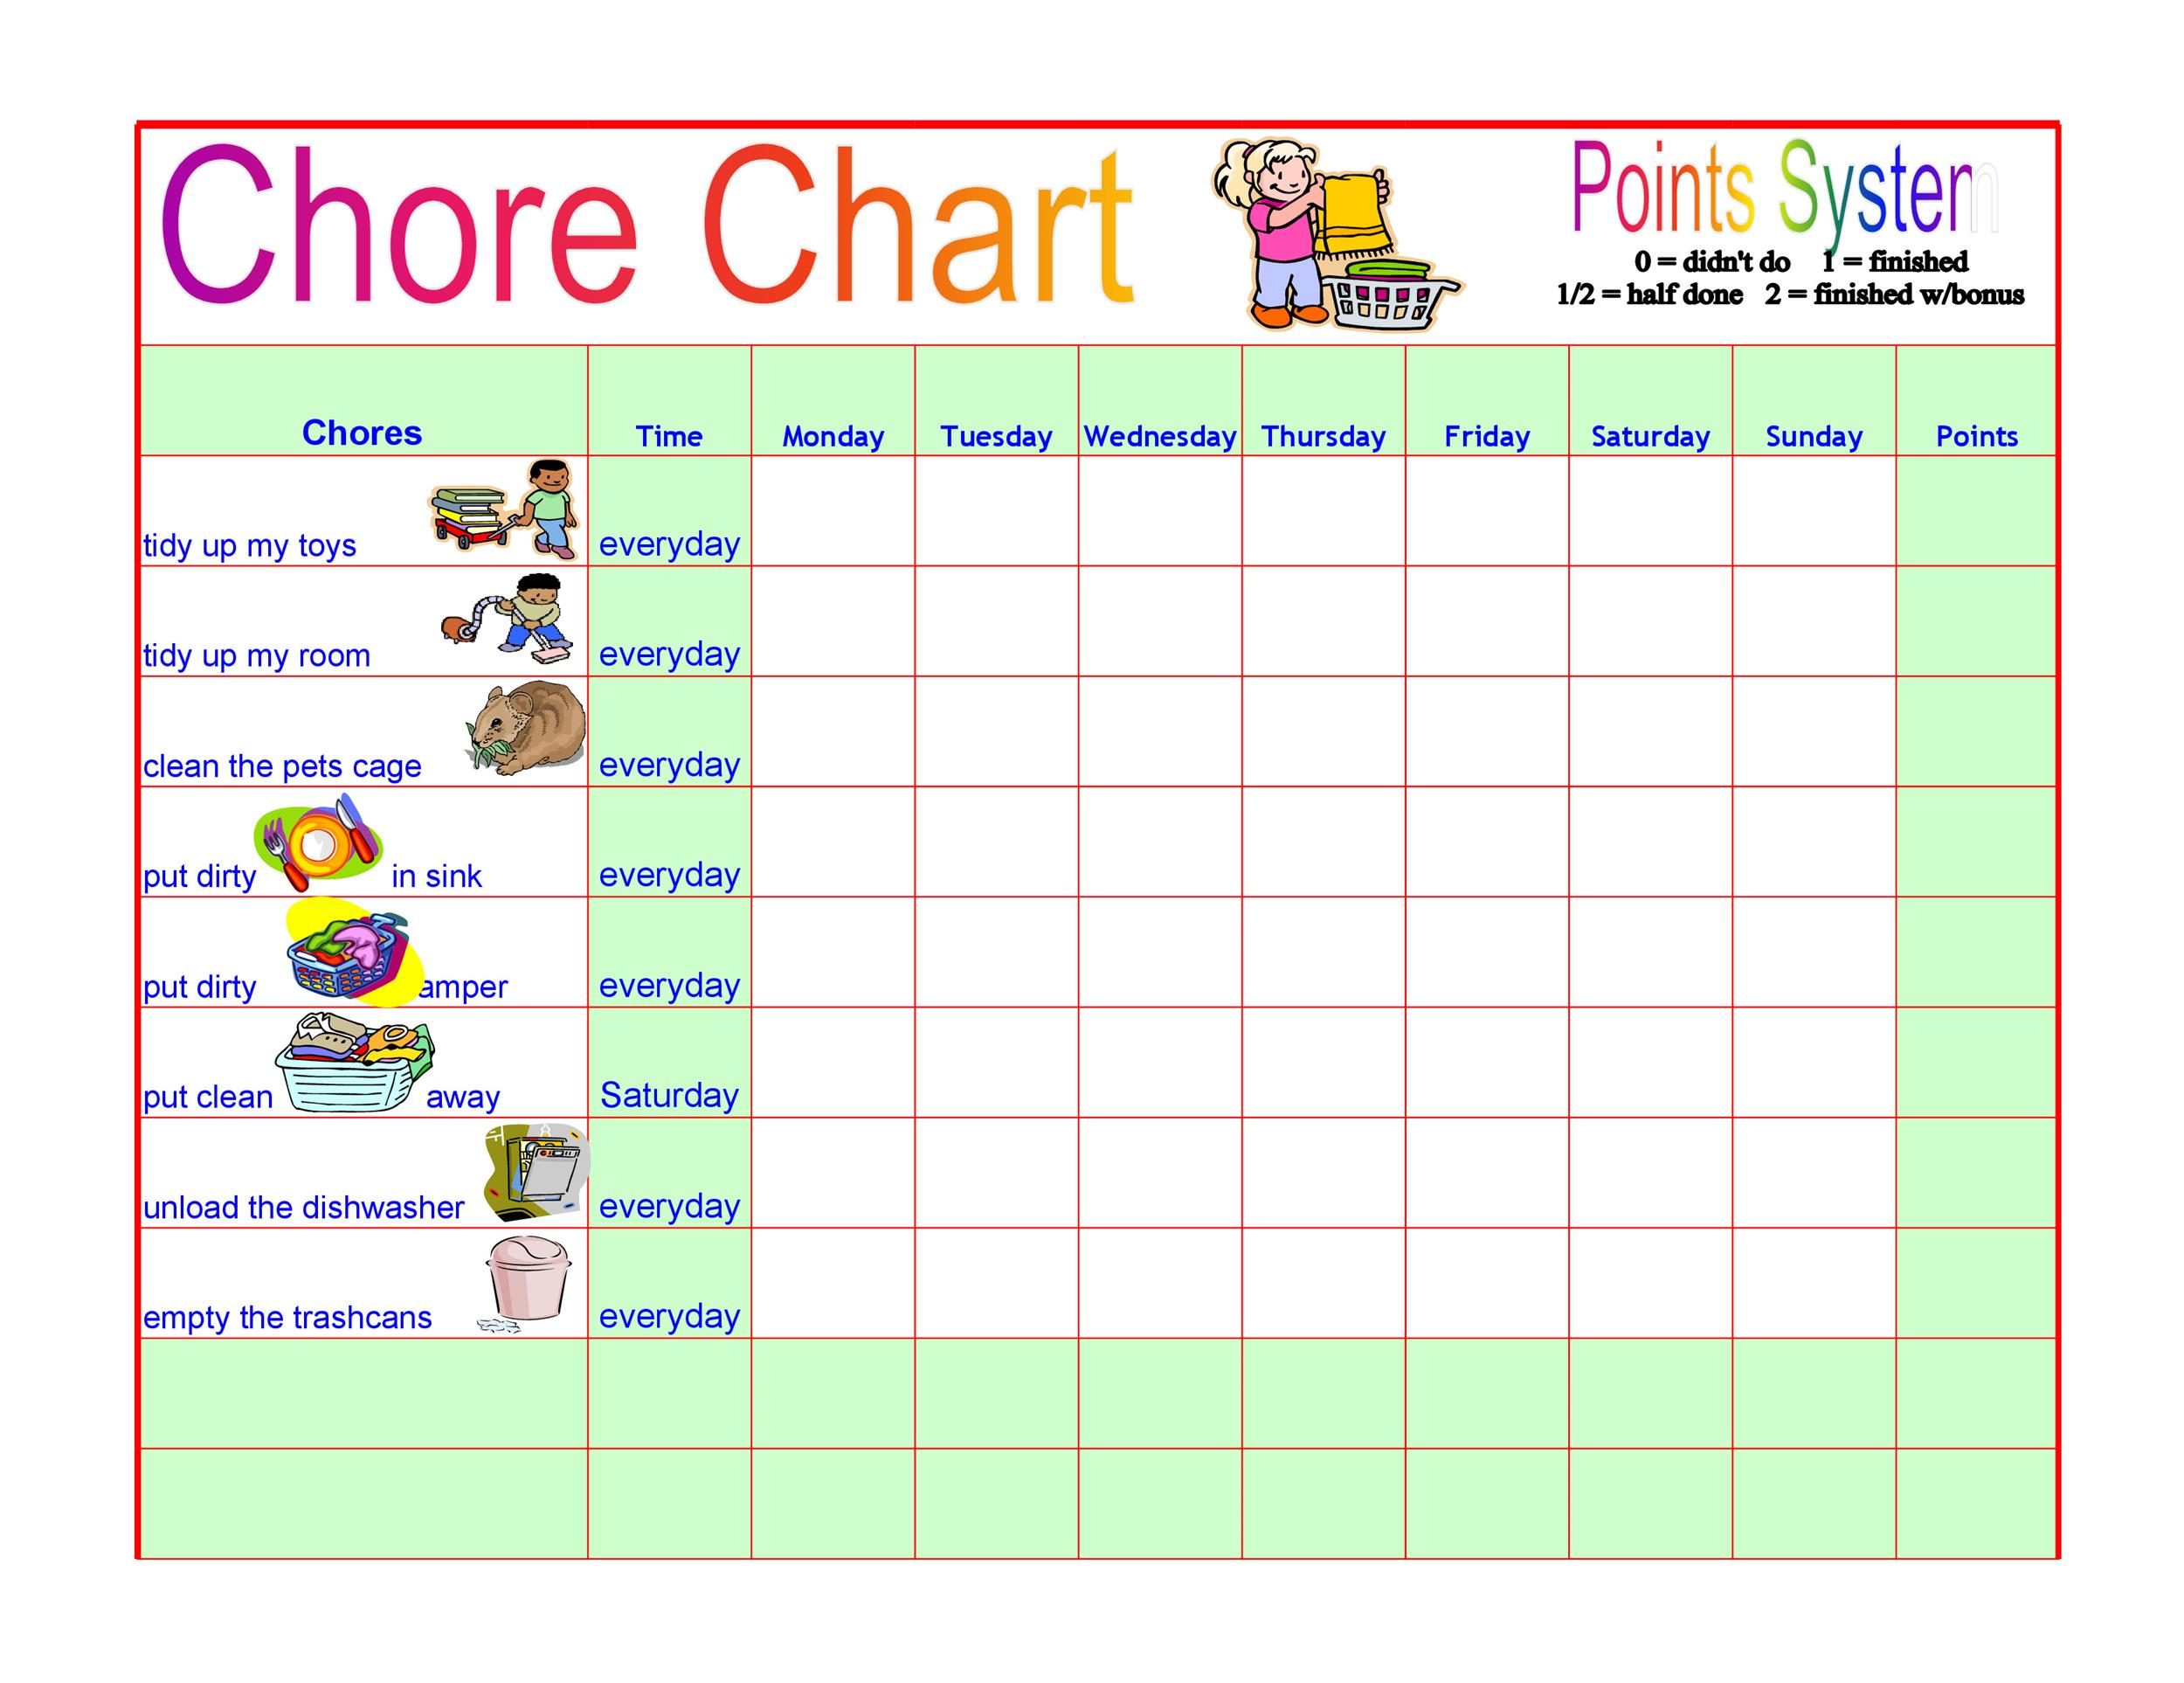 photograph about Chore Chart Printable Free identified as 43 Totally free Chore Chart Templates for Small children ᐅ Template Lab